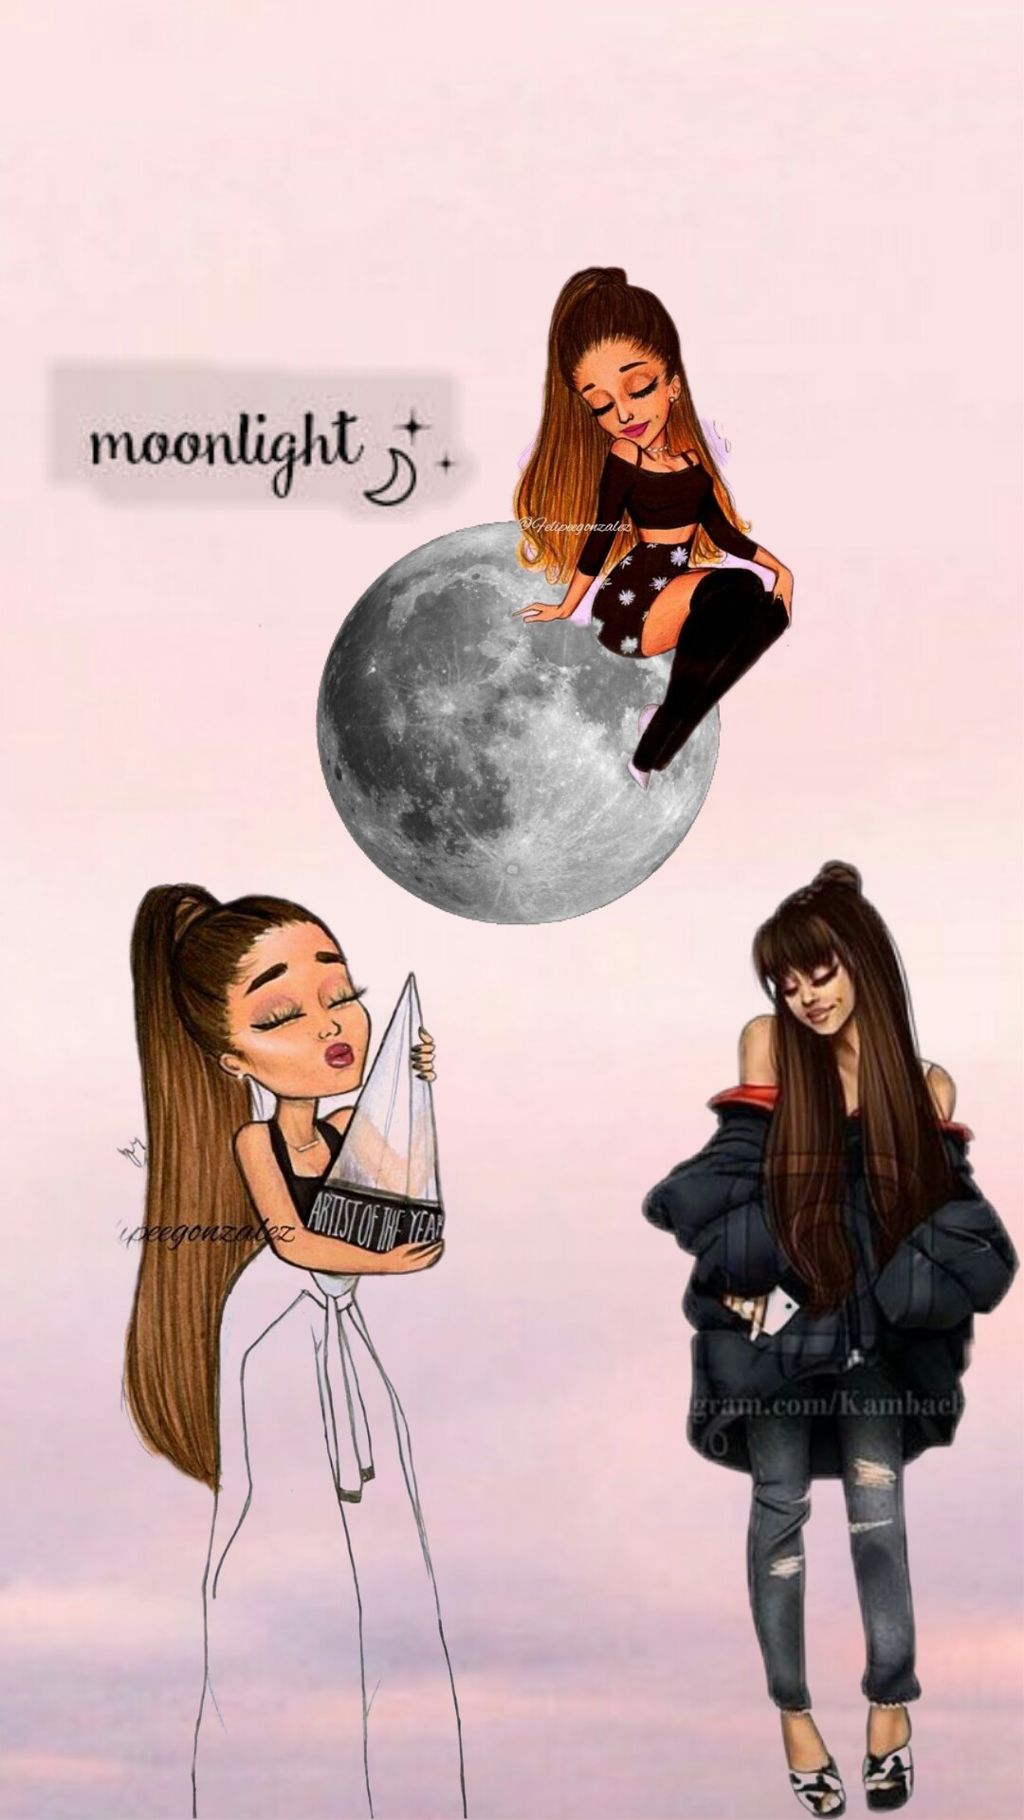 #ari #ariana #grande #wallpaper #lockscreen #homescreen #moonlight